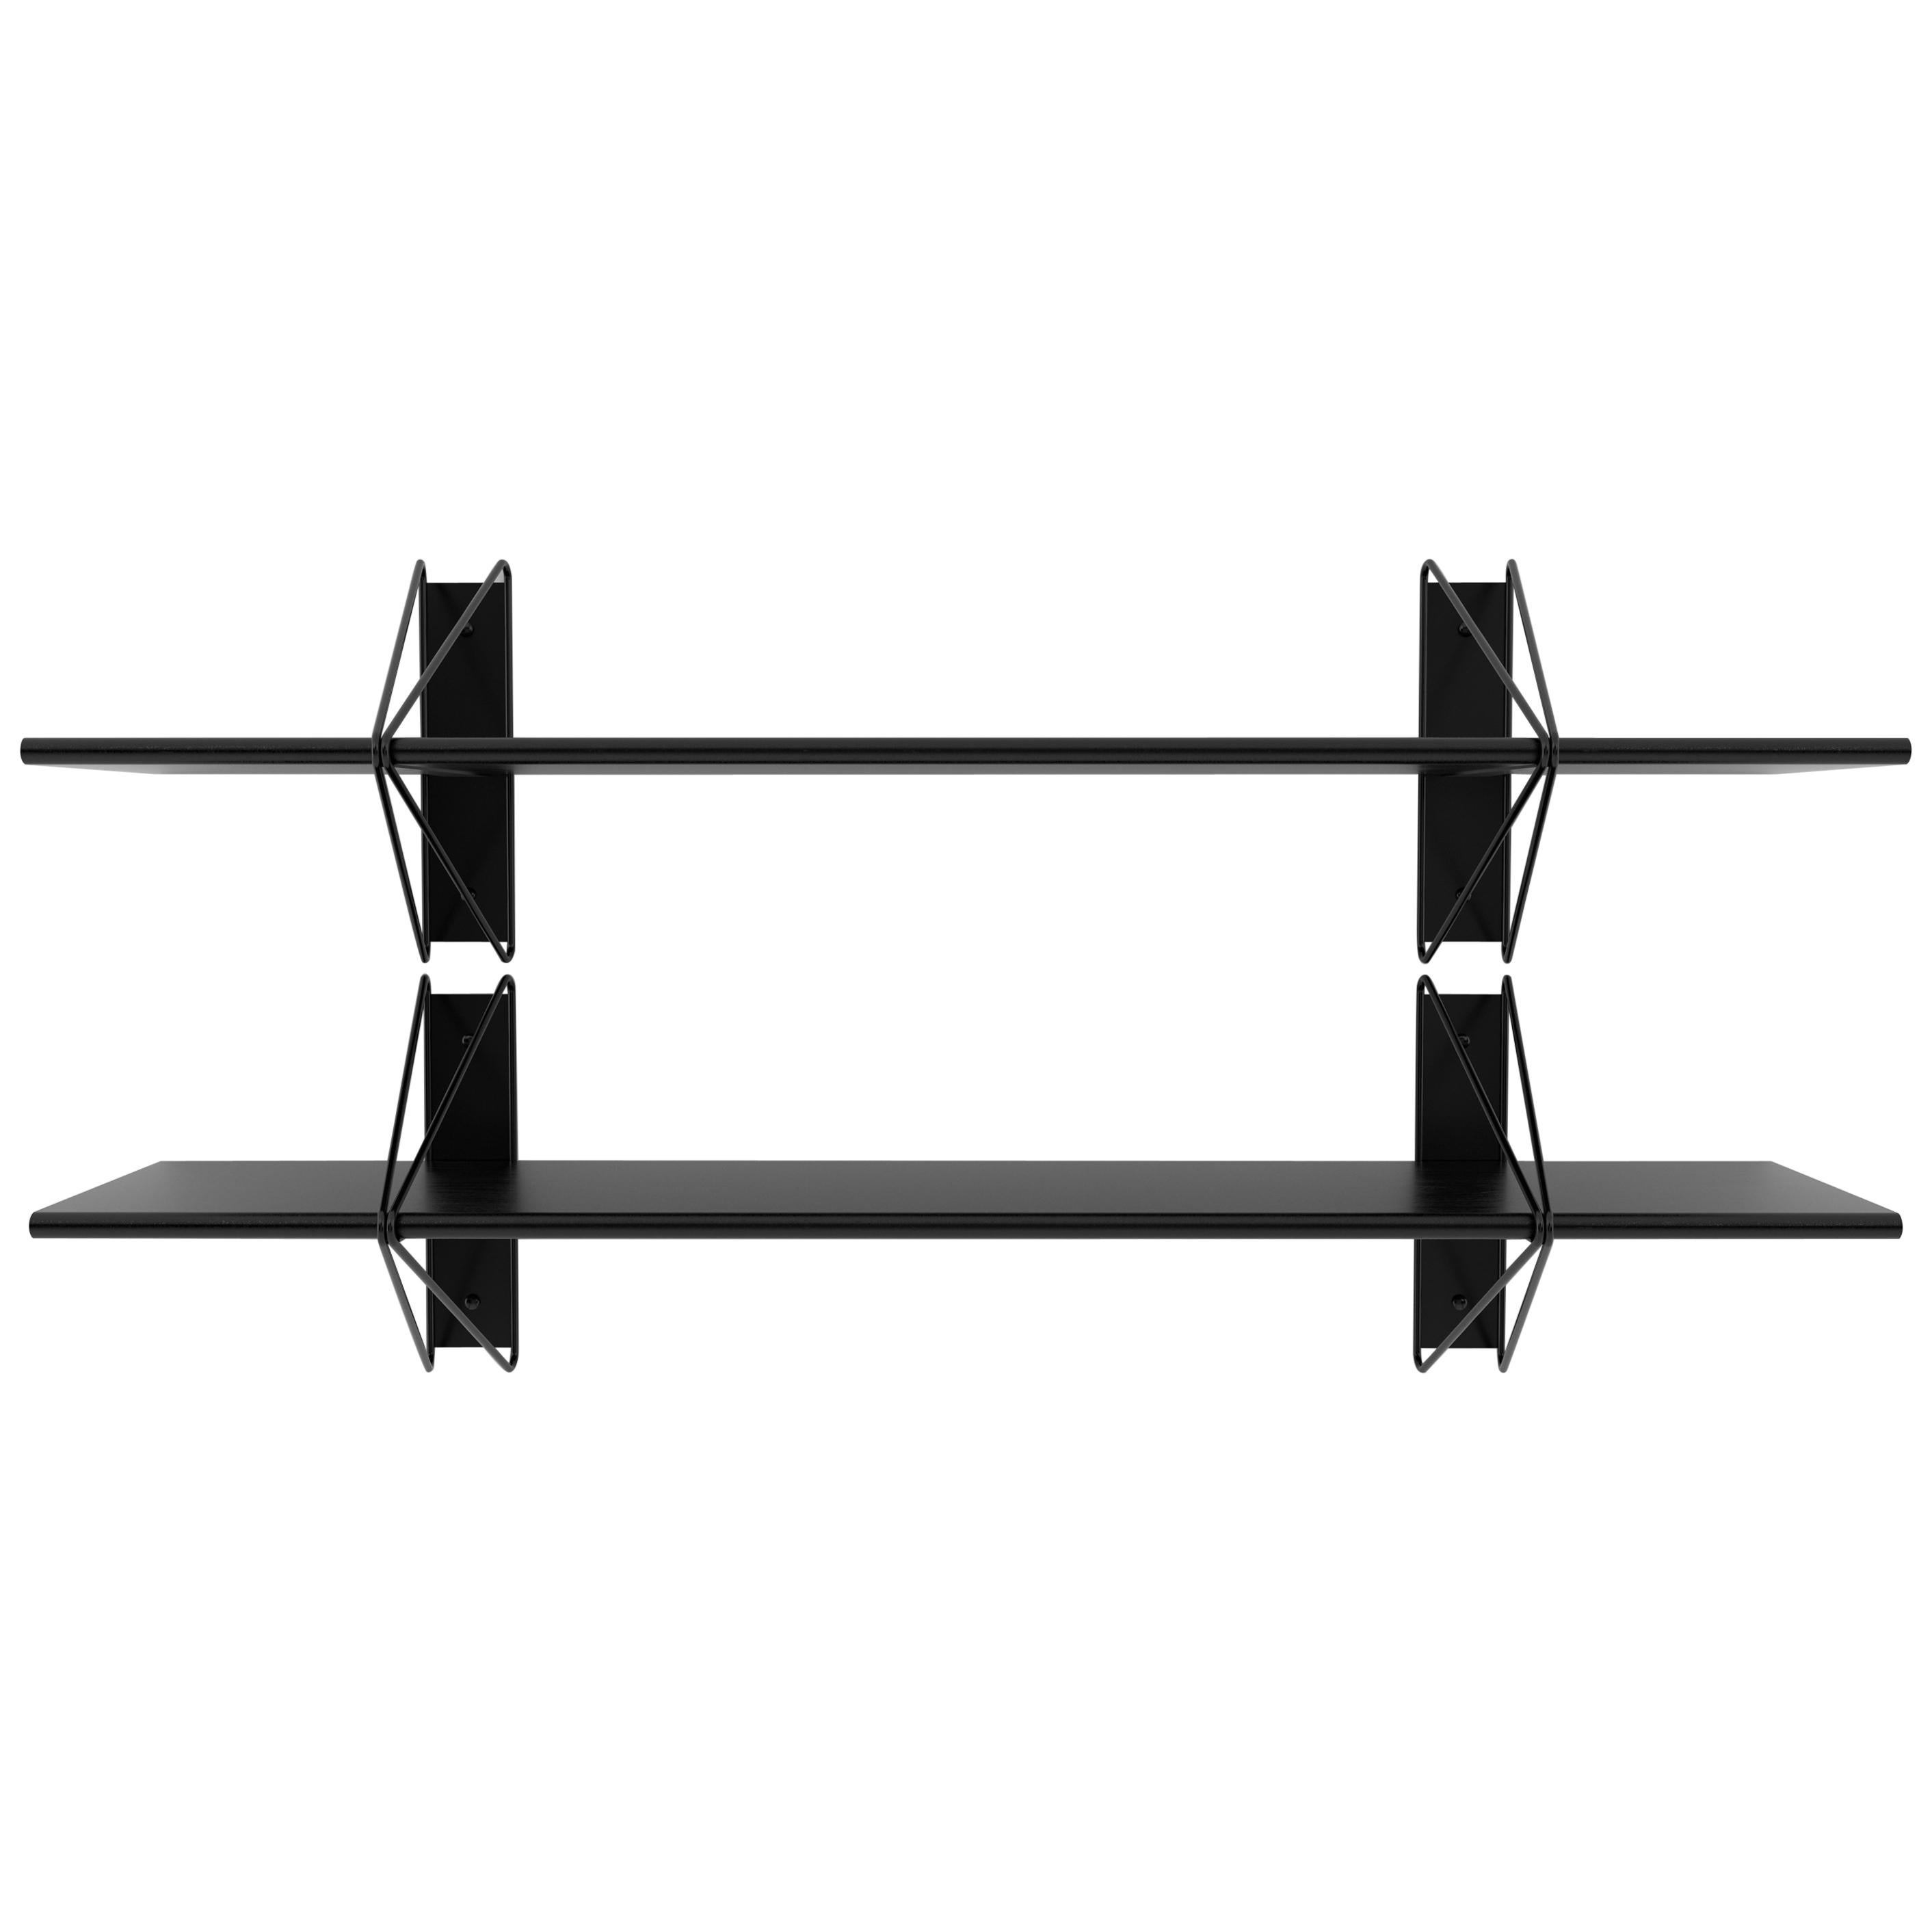 Customizable Set of 2 Strut Shelves from Souda, Black, Made to Order